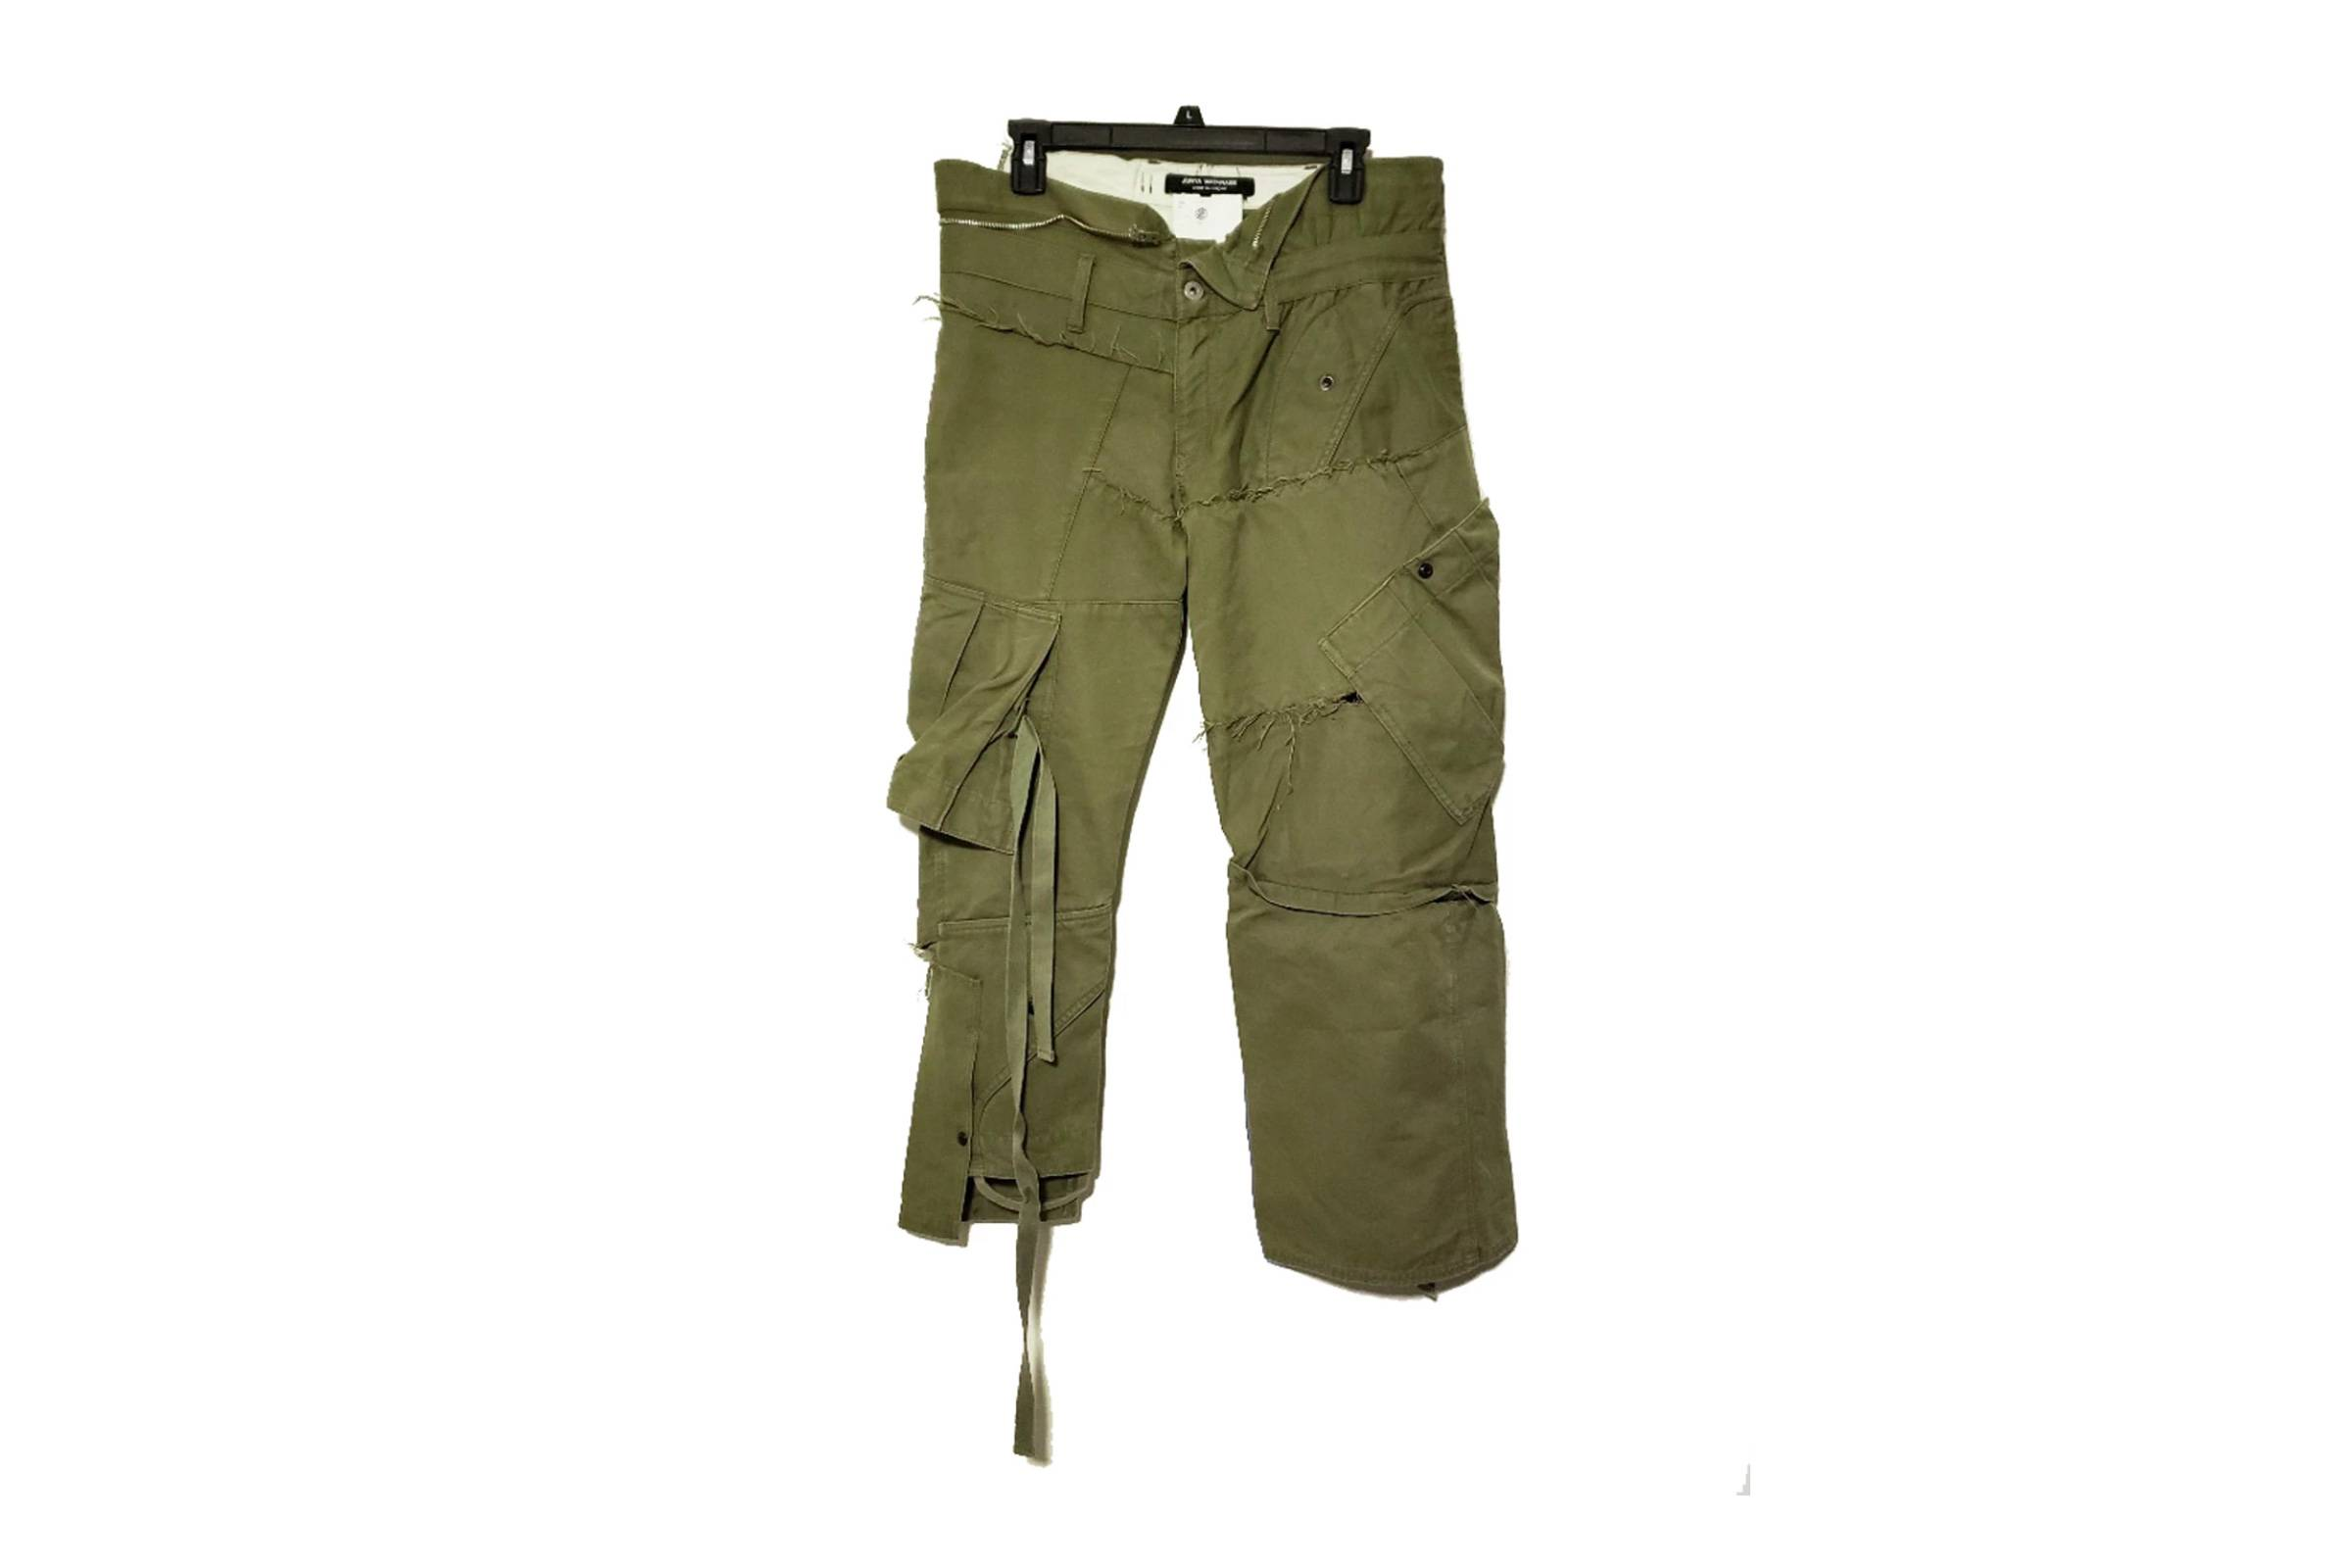 Junya Watanabe Fall/Winter 2006 Reconstructed Cargo Pants